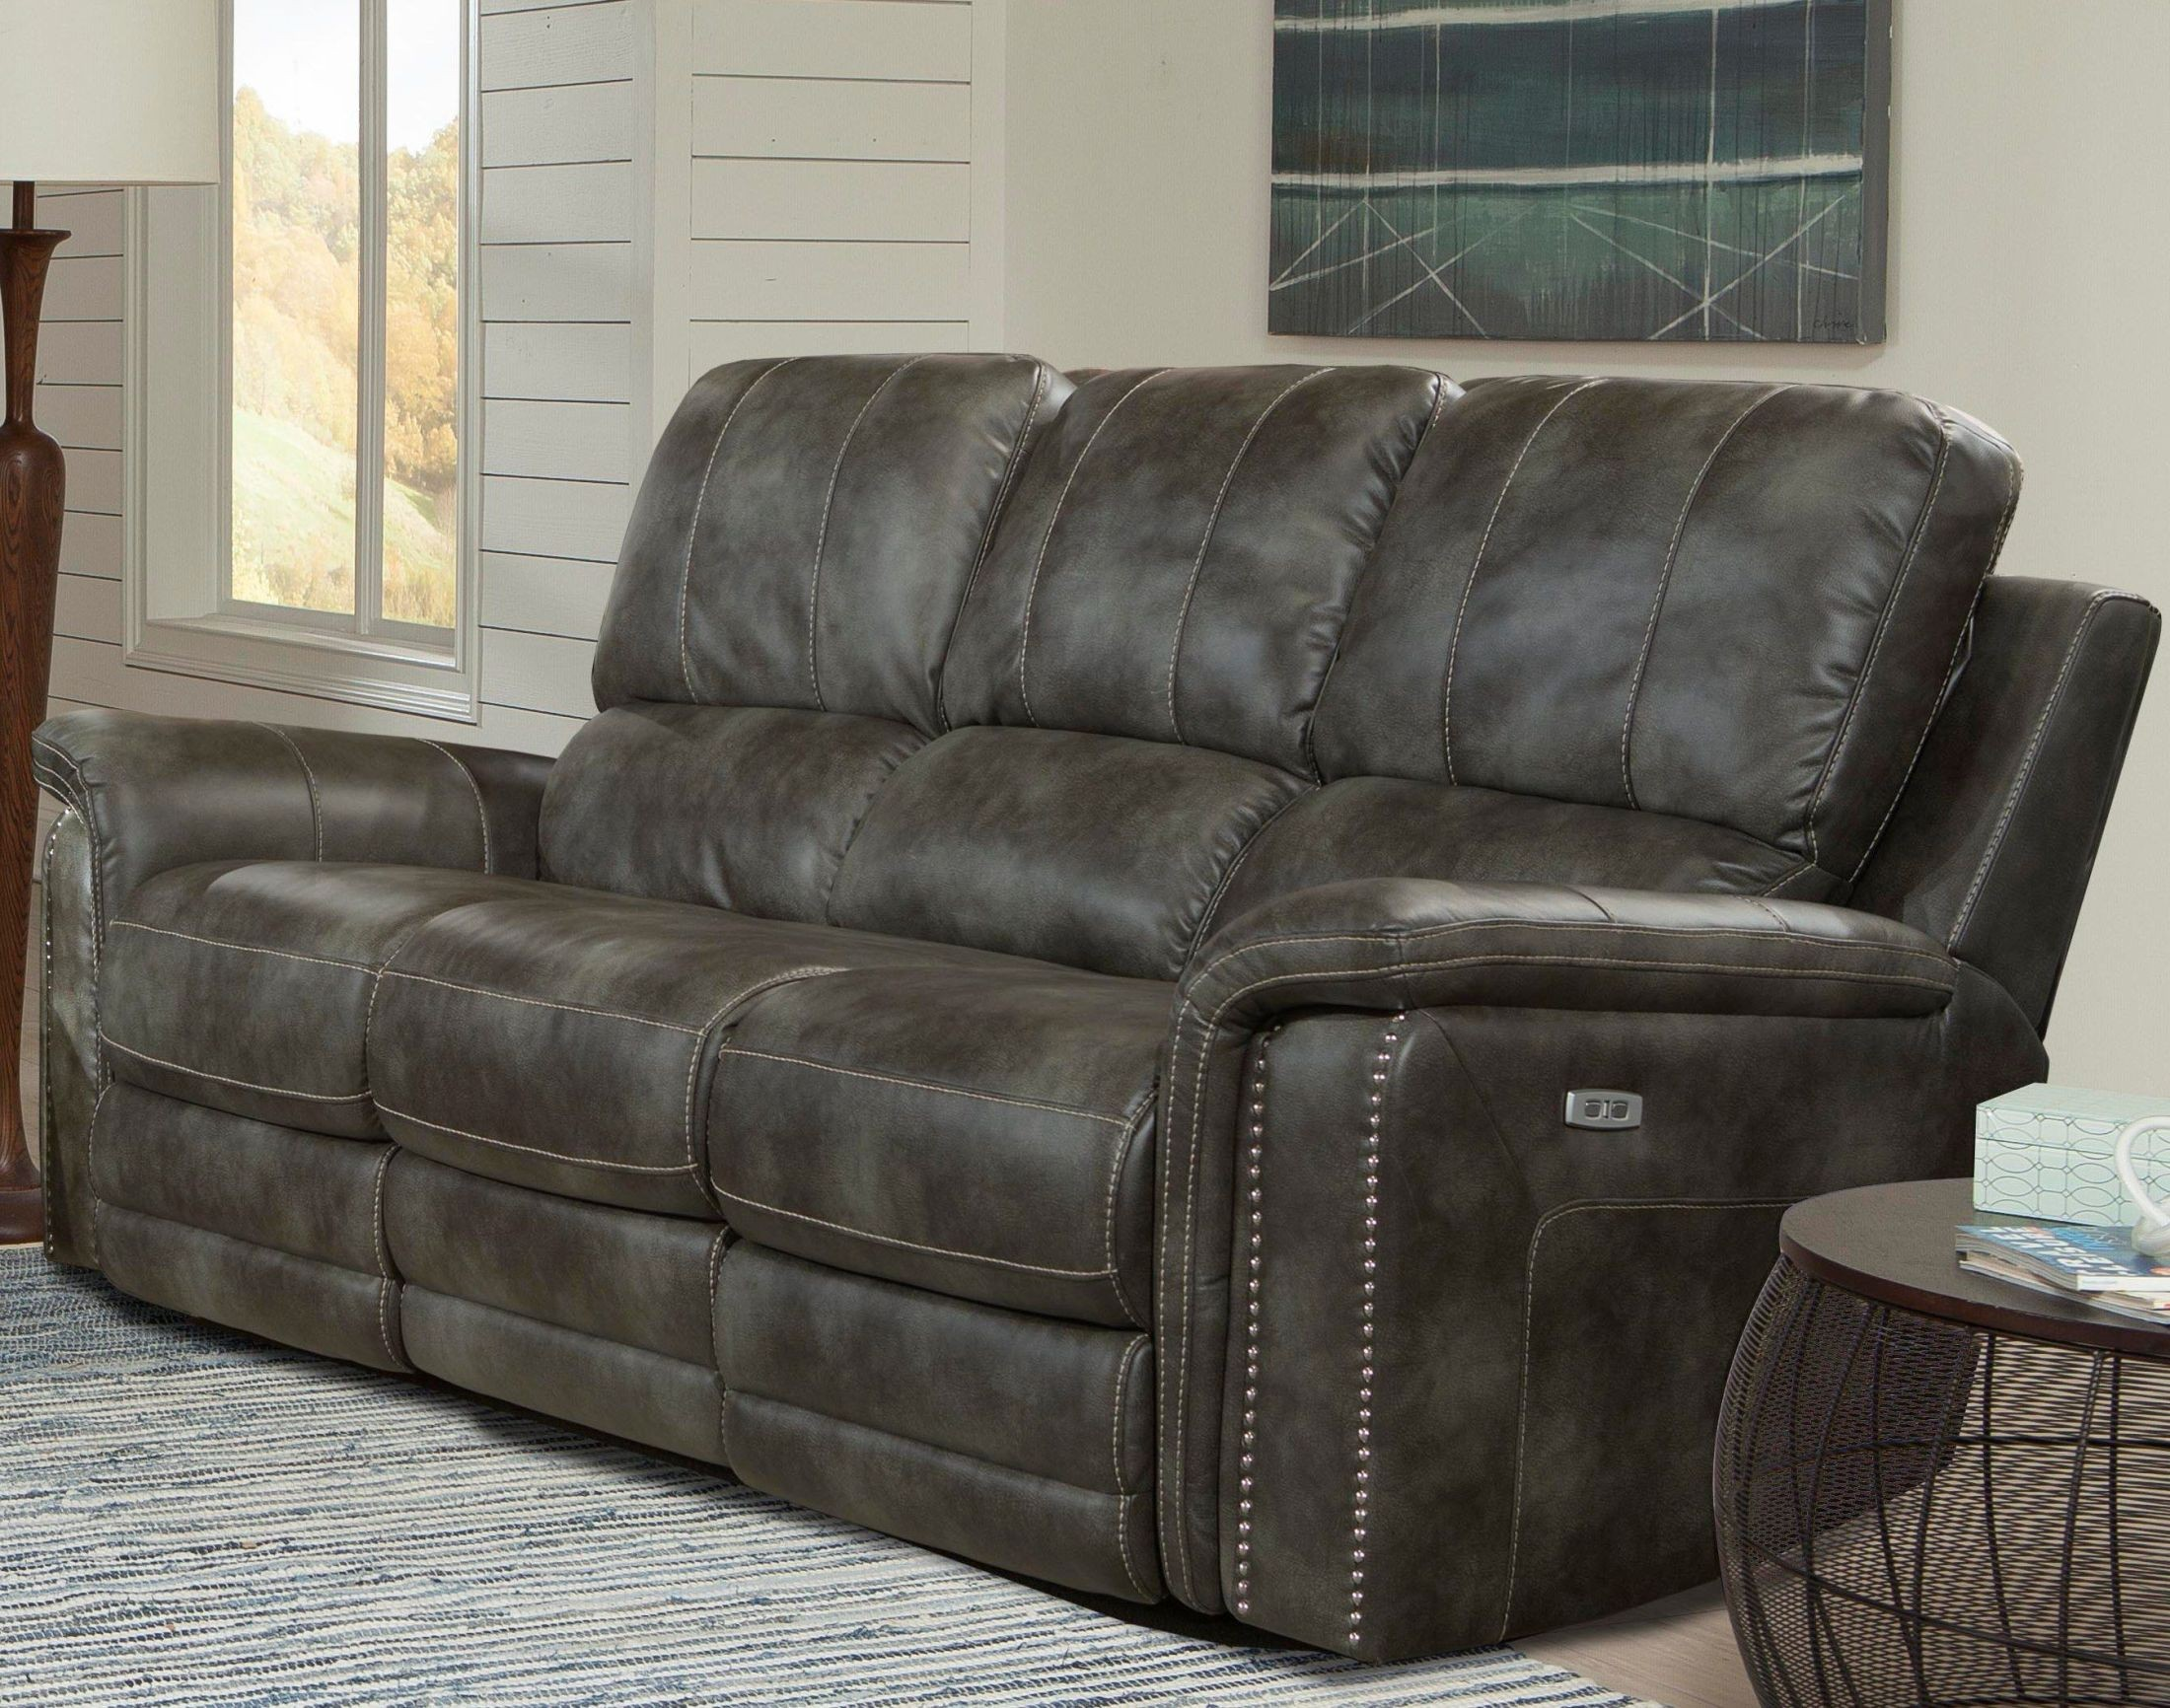 Belize Ash Dual Power Reclining Sofa From Parker Living